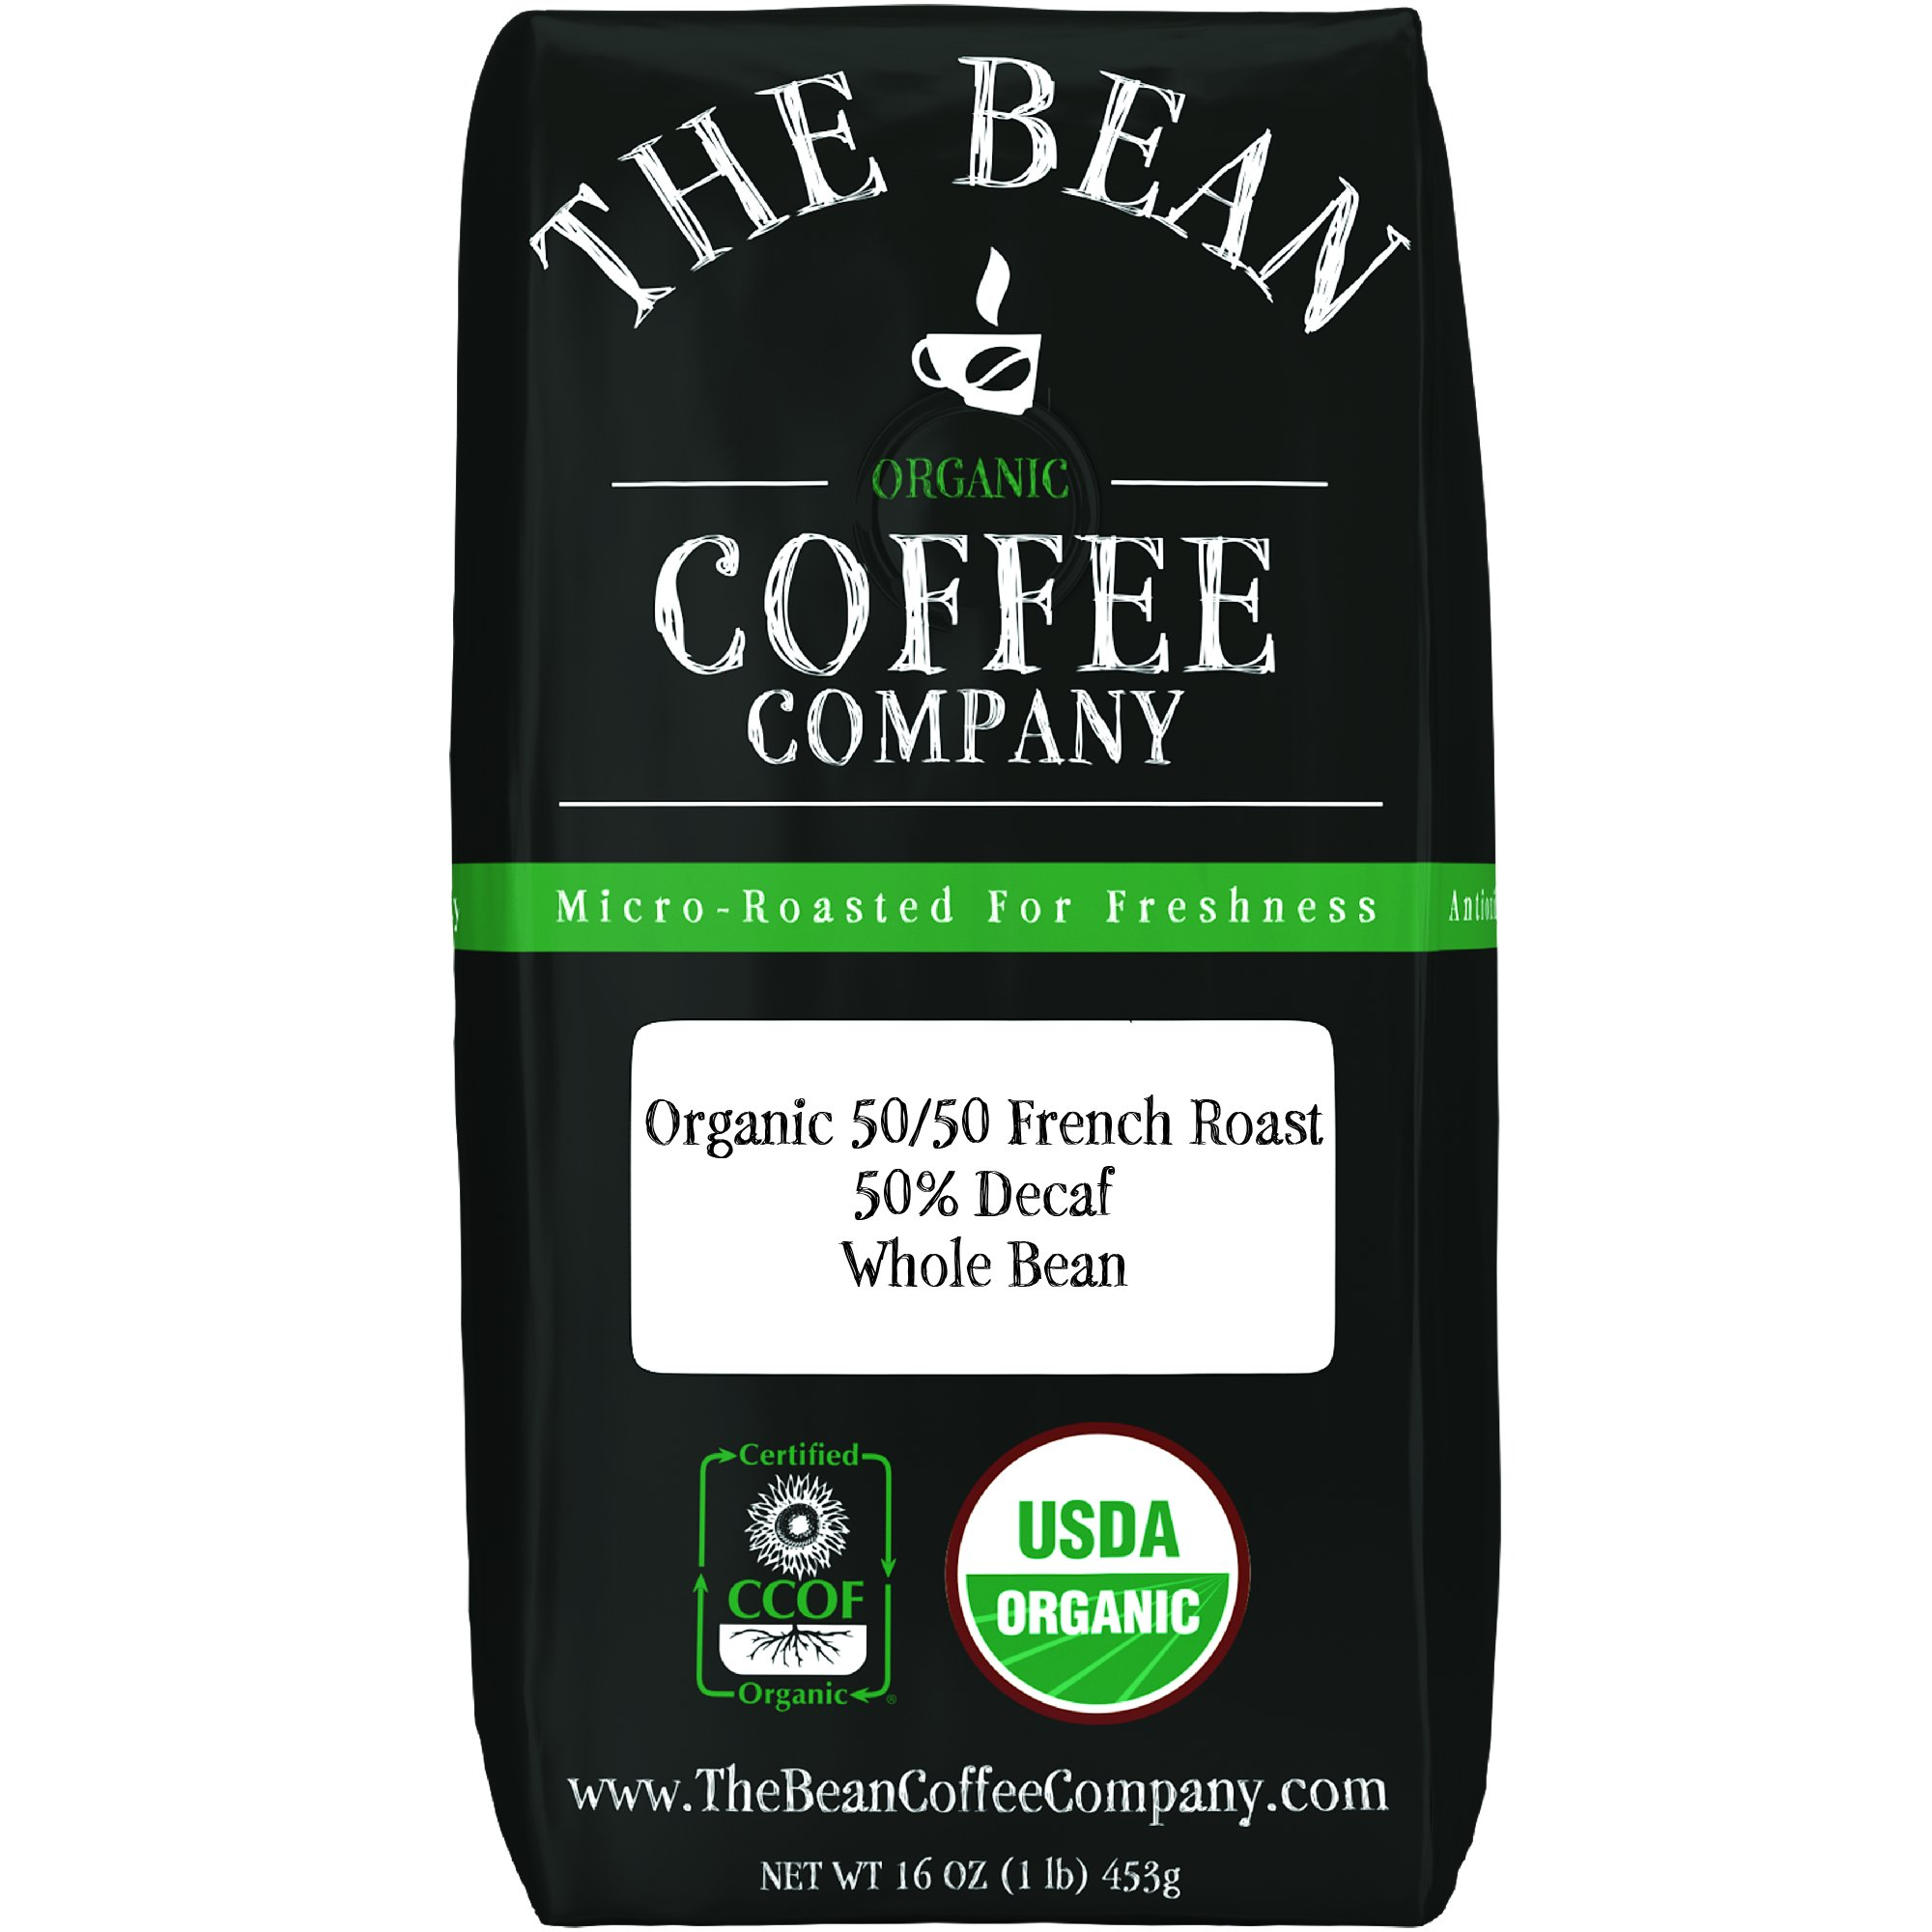 The Bean Coffee Company Organic 50/50 French Roast, 50% Decaf, Whole Bean, 16-Ounce Bag